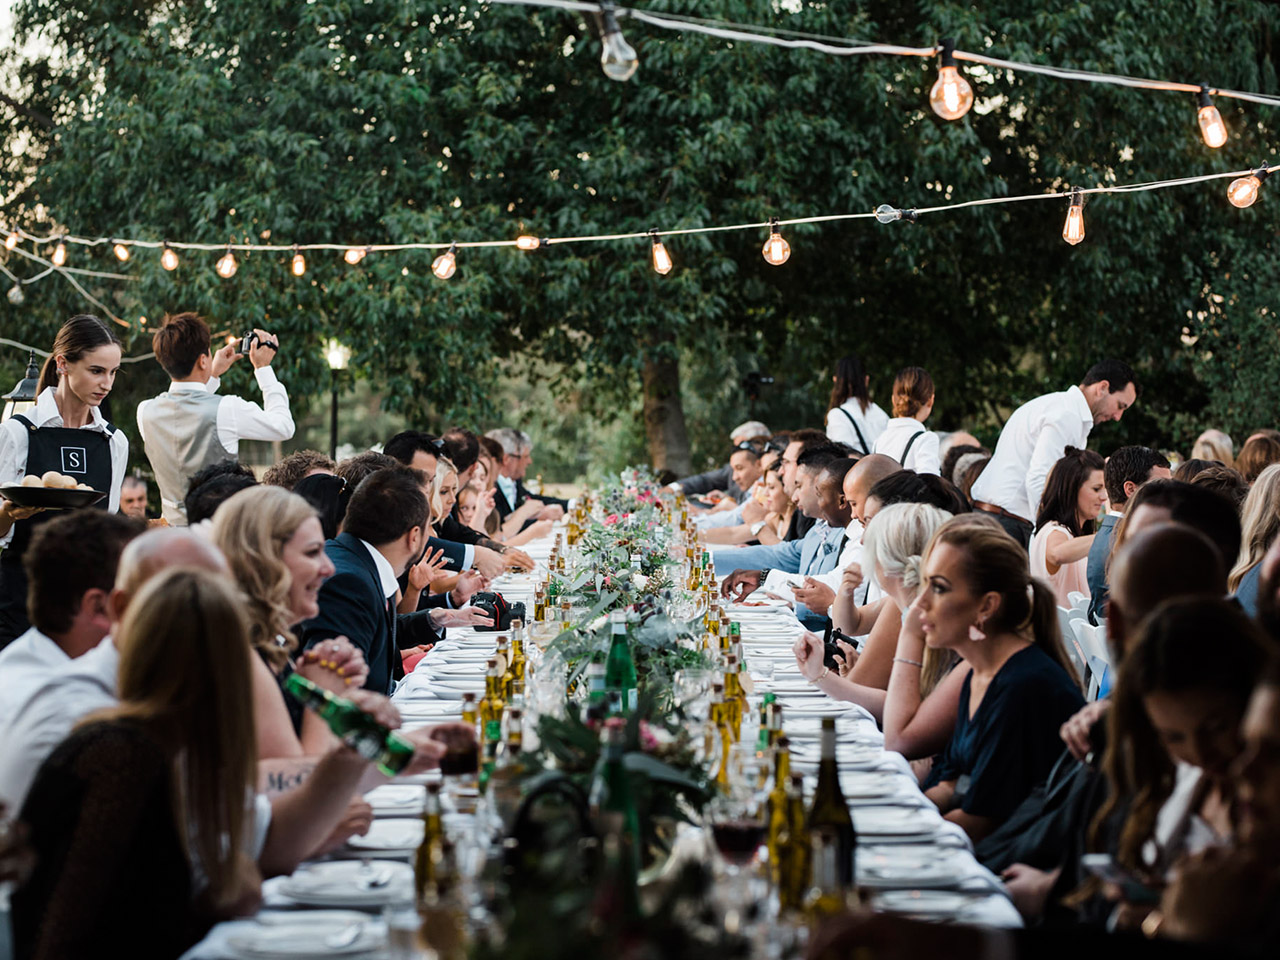 People Gathered In A Long Table With Food And Drinks And A String Lights In The Terrace